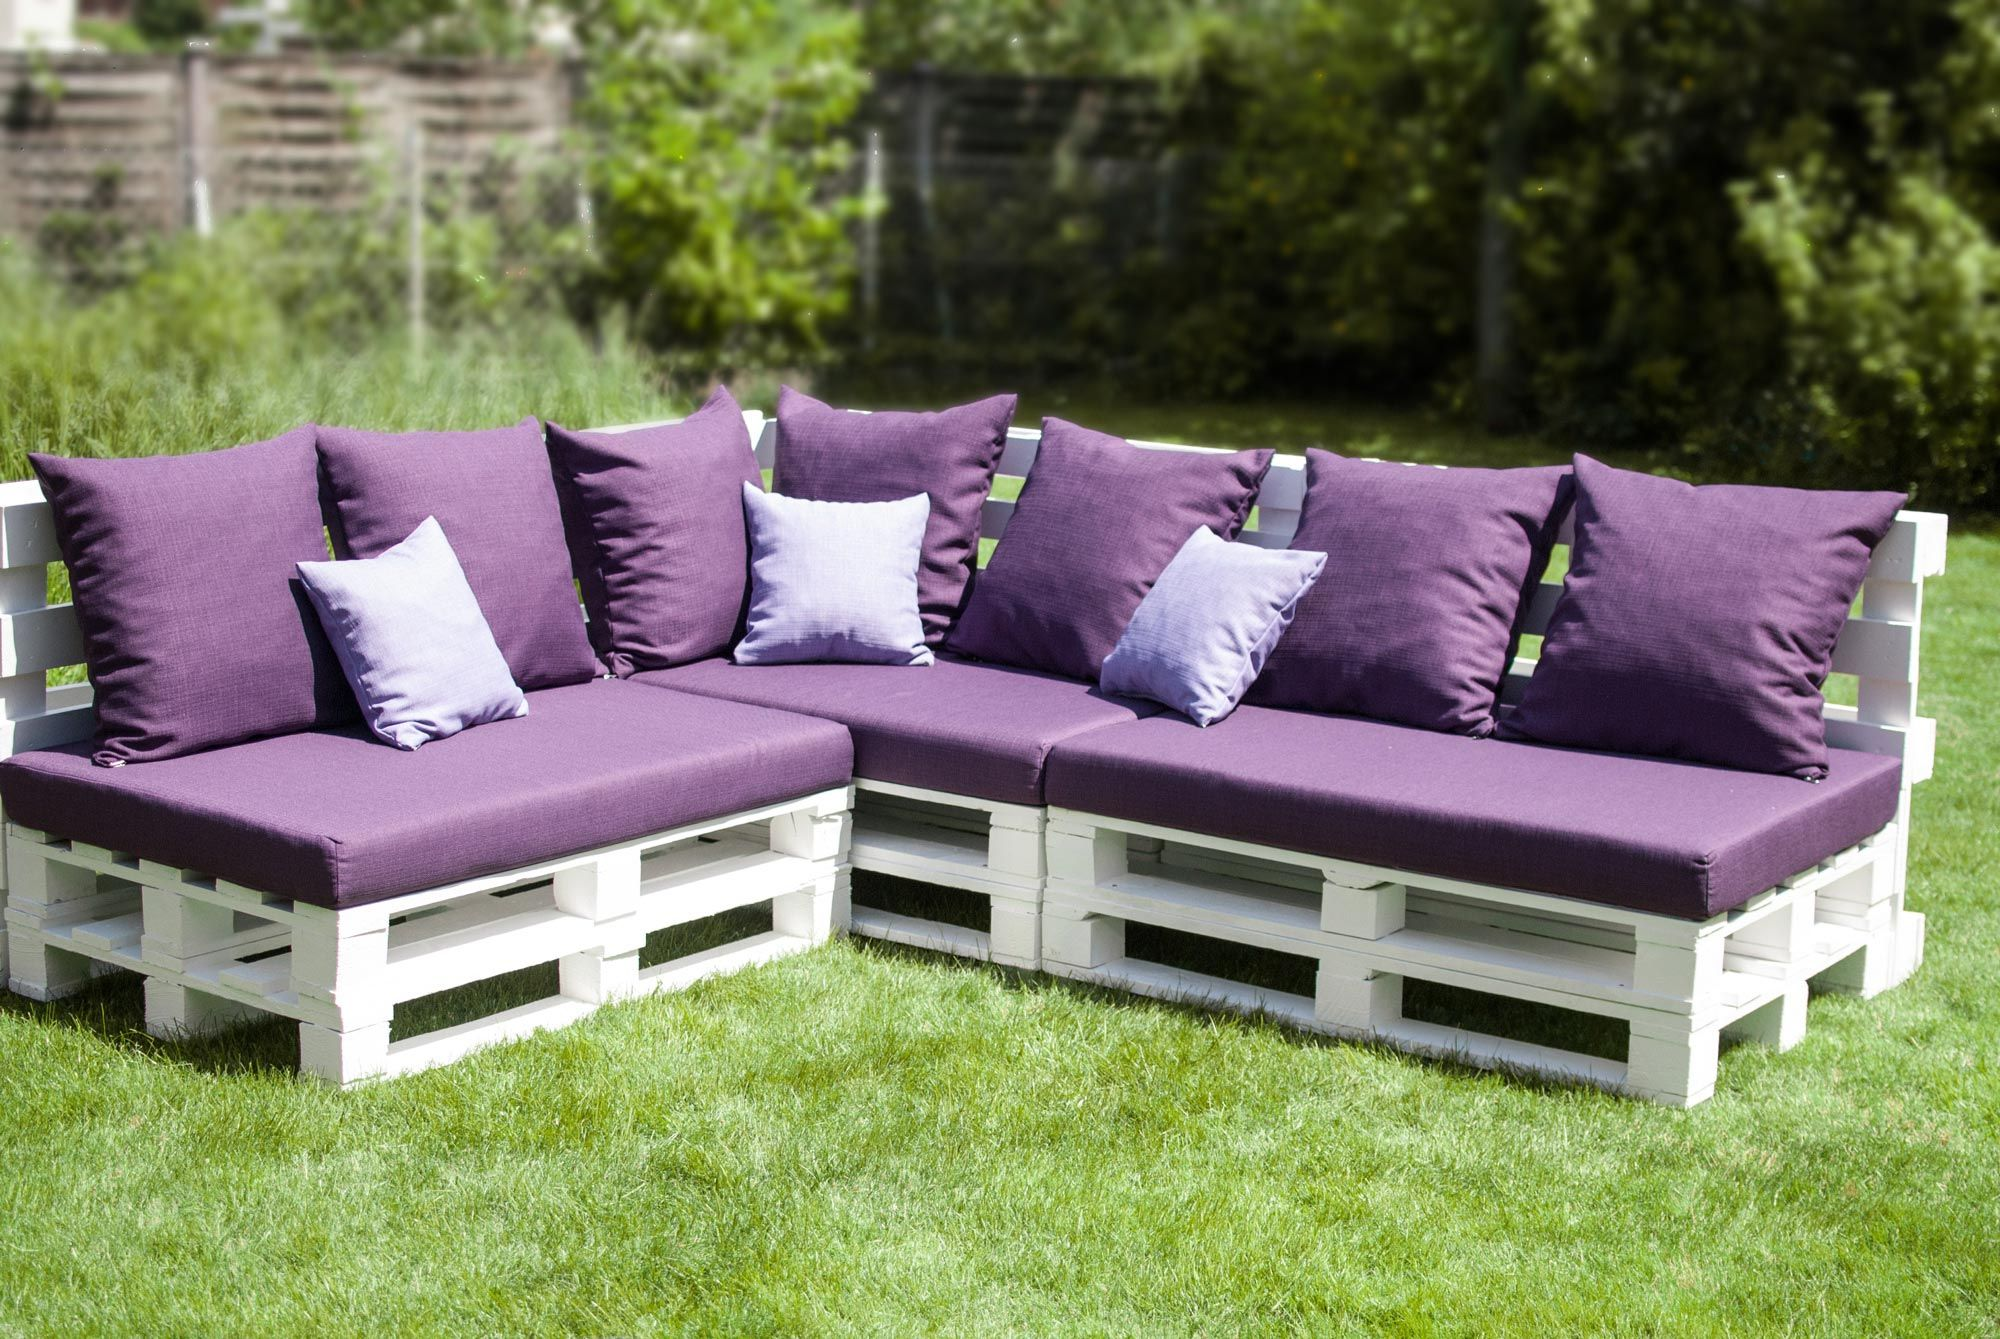 DIY Outdoor Couch › Wohn Guide Blog Super cool